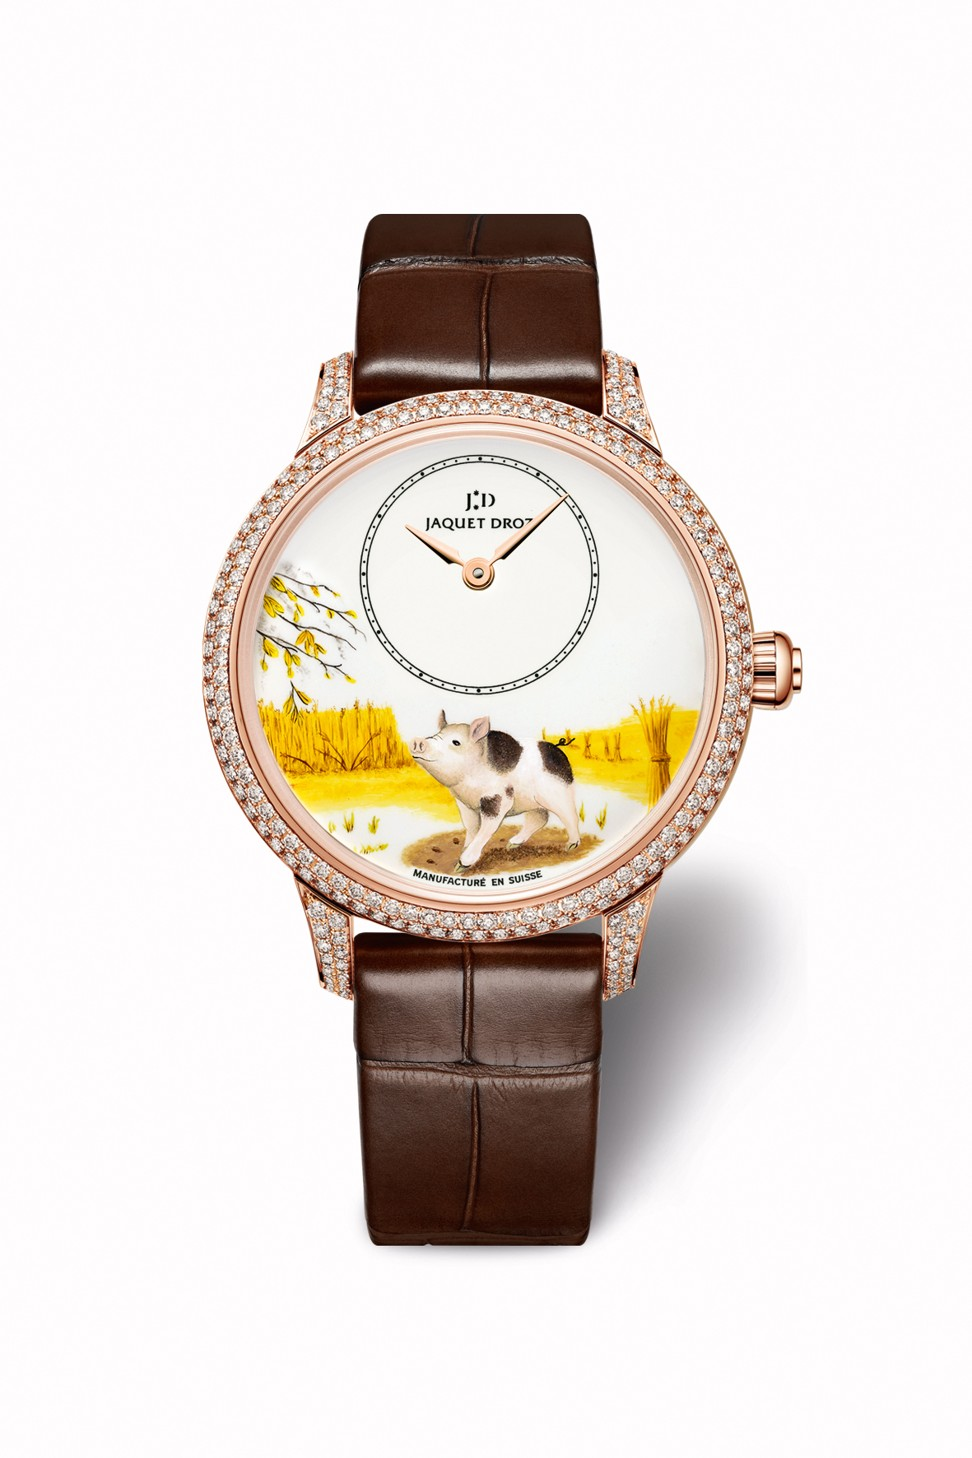 2680be979747 Three Year of the Pig watches from Chopard